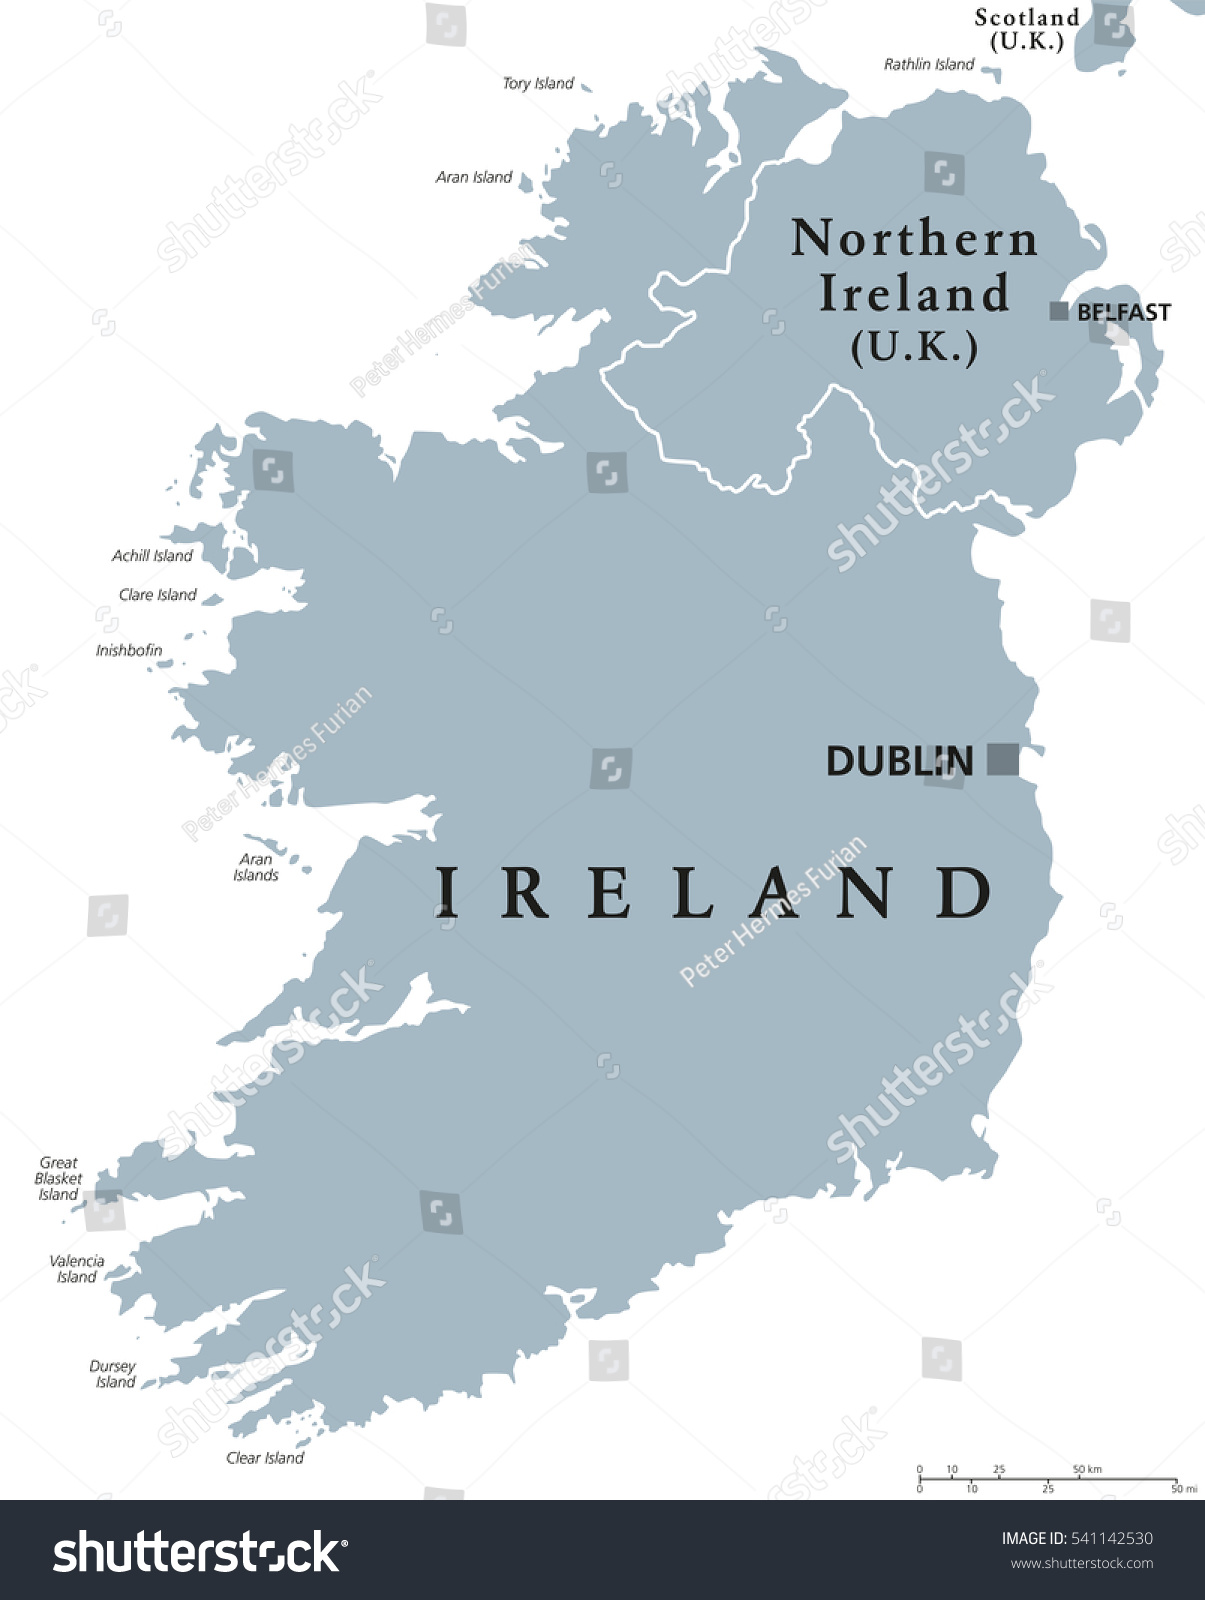 Islands Of Ireland Map.Republic Ireland Northern Ireland Political Map Stock Vector